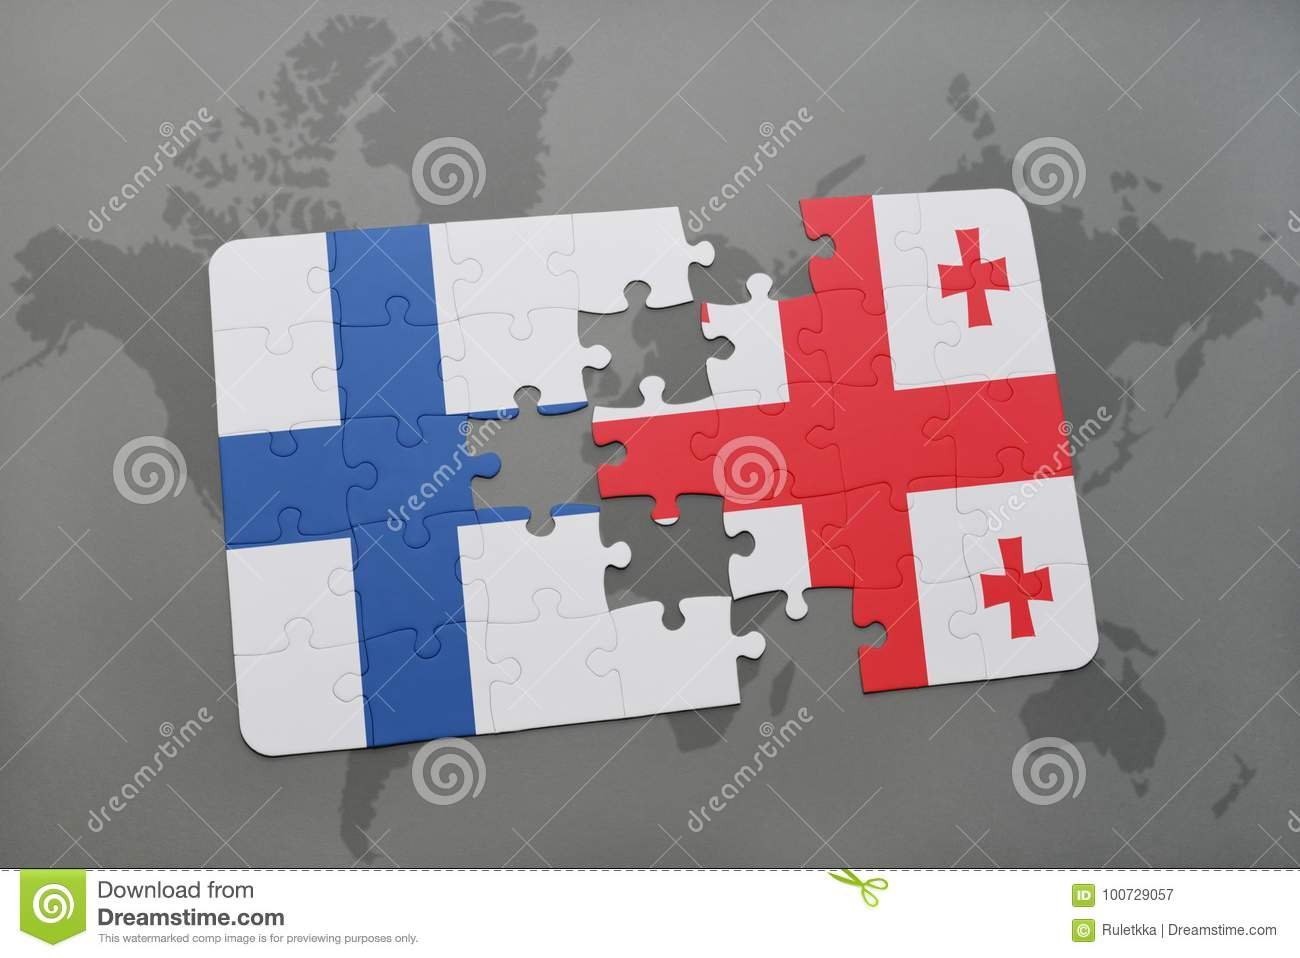 Puzzle with the national flag of finland and georgia on a world map download puzzle with the national flag of finland and georgia on a world map background gumiabroncs Images